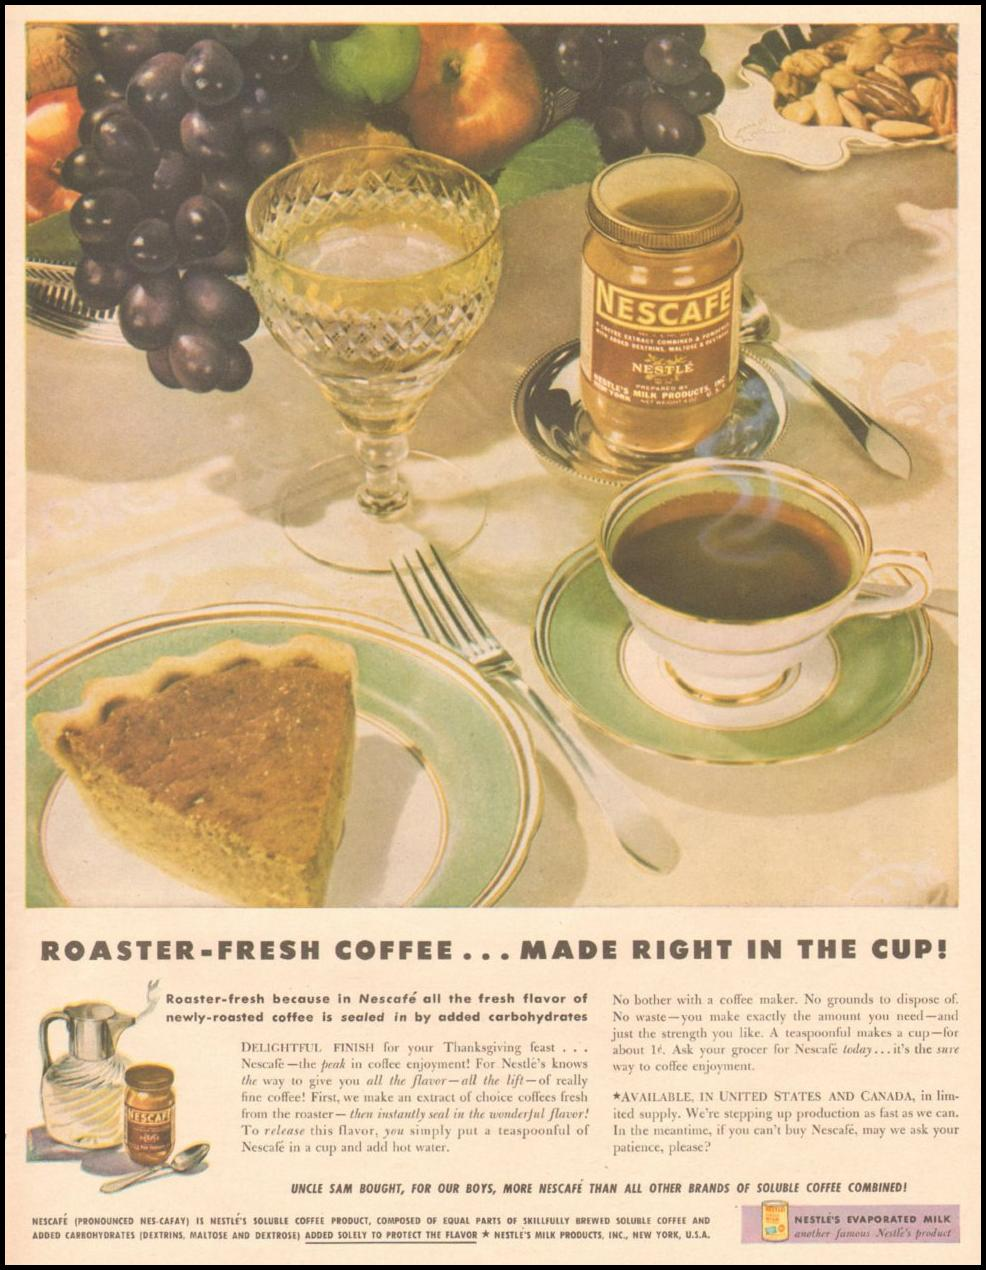 NESCAFE INSTANT COFFEE LIFE 11/25/1946